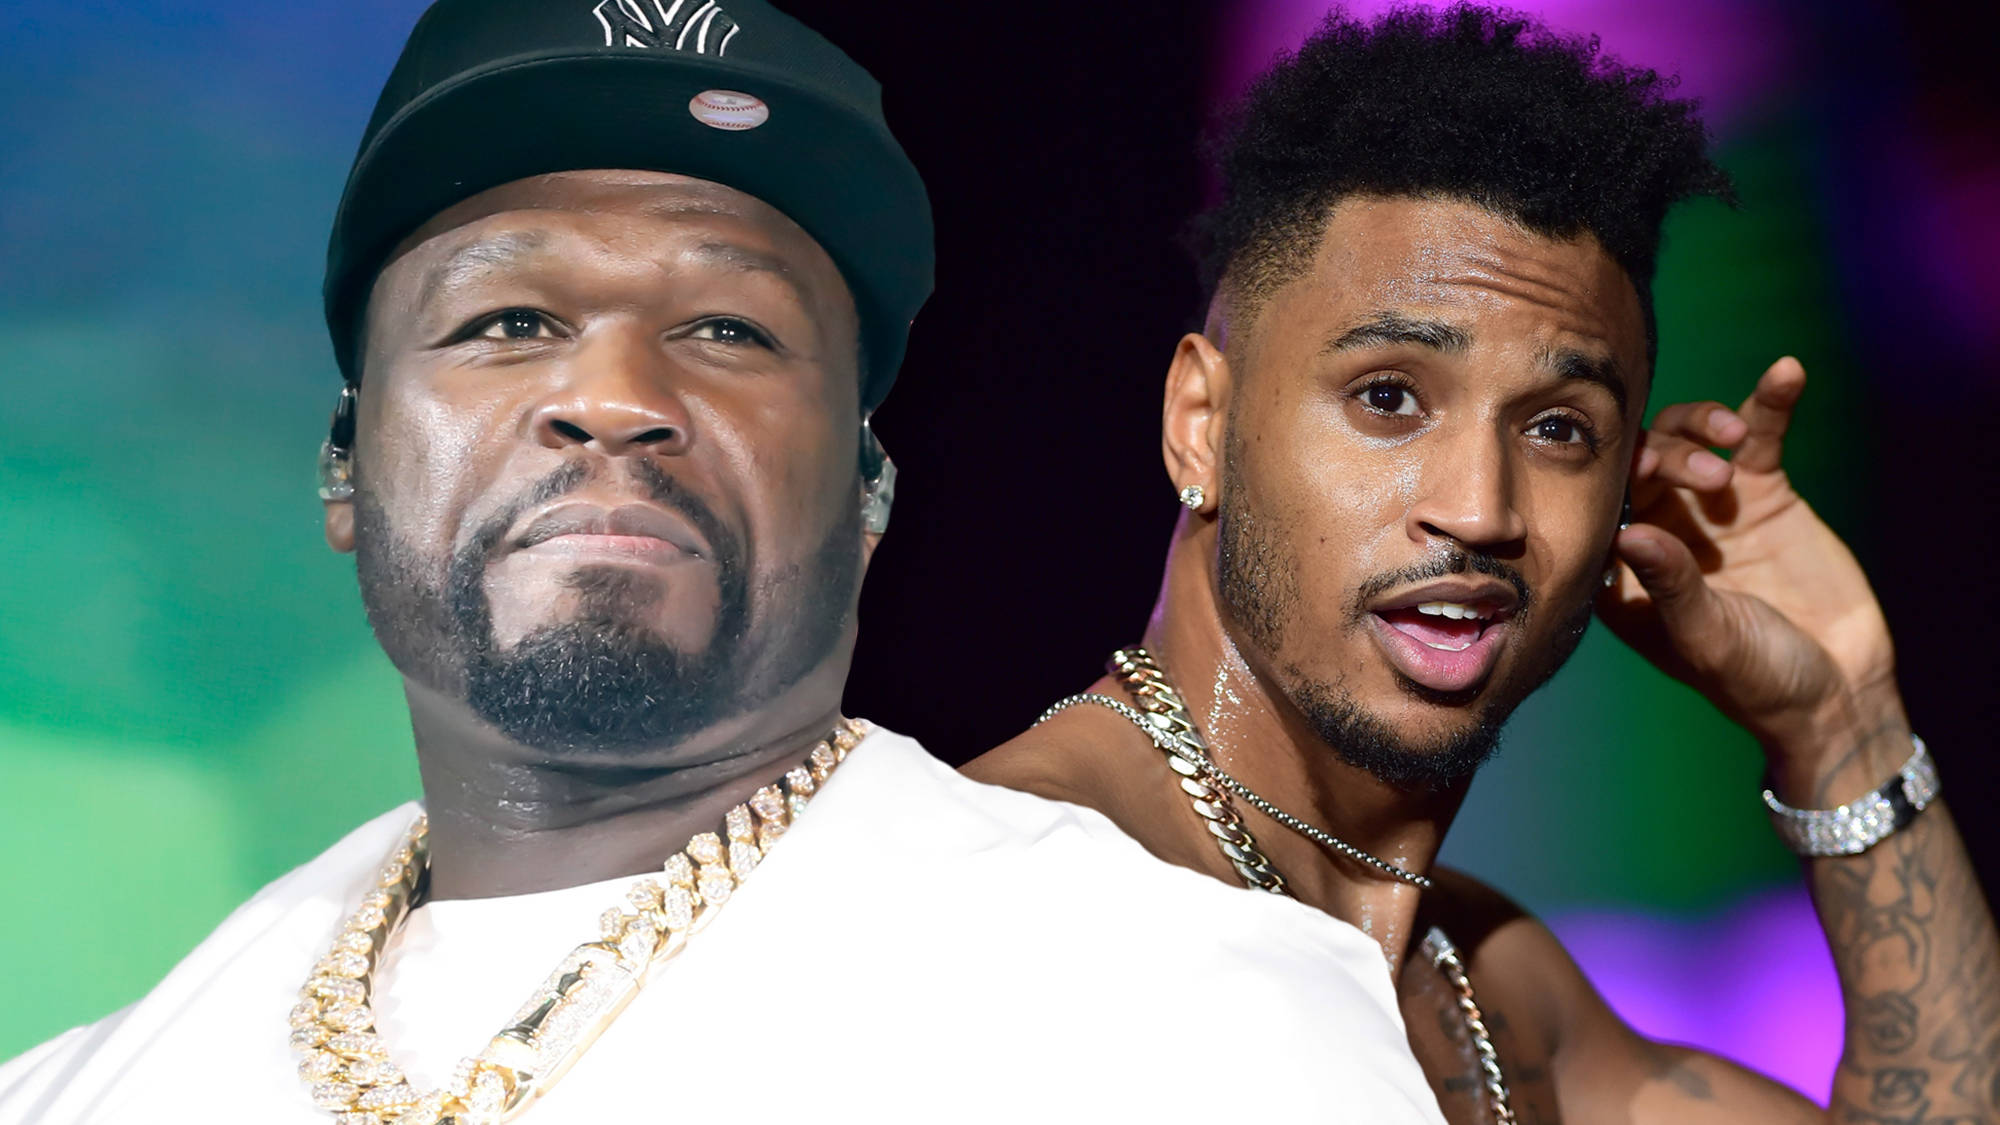 50 Cent trolls Trey Songz over his Power shooting theory with old mugshot